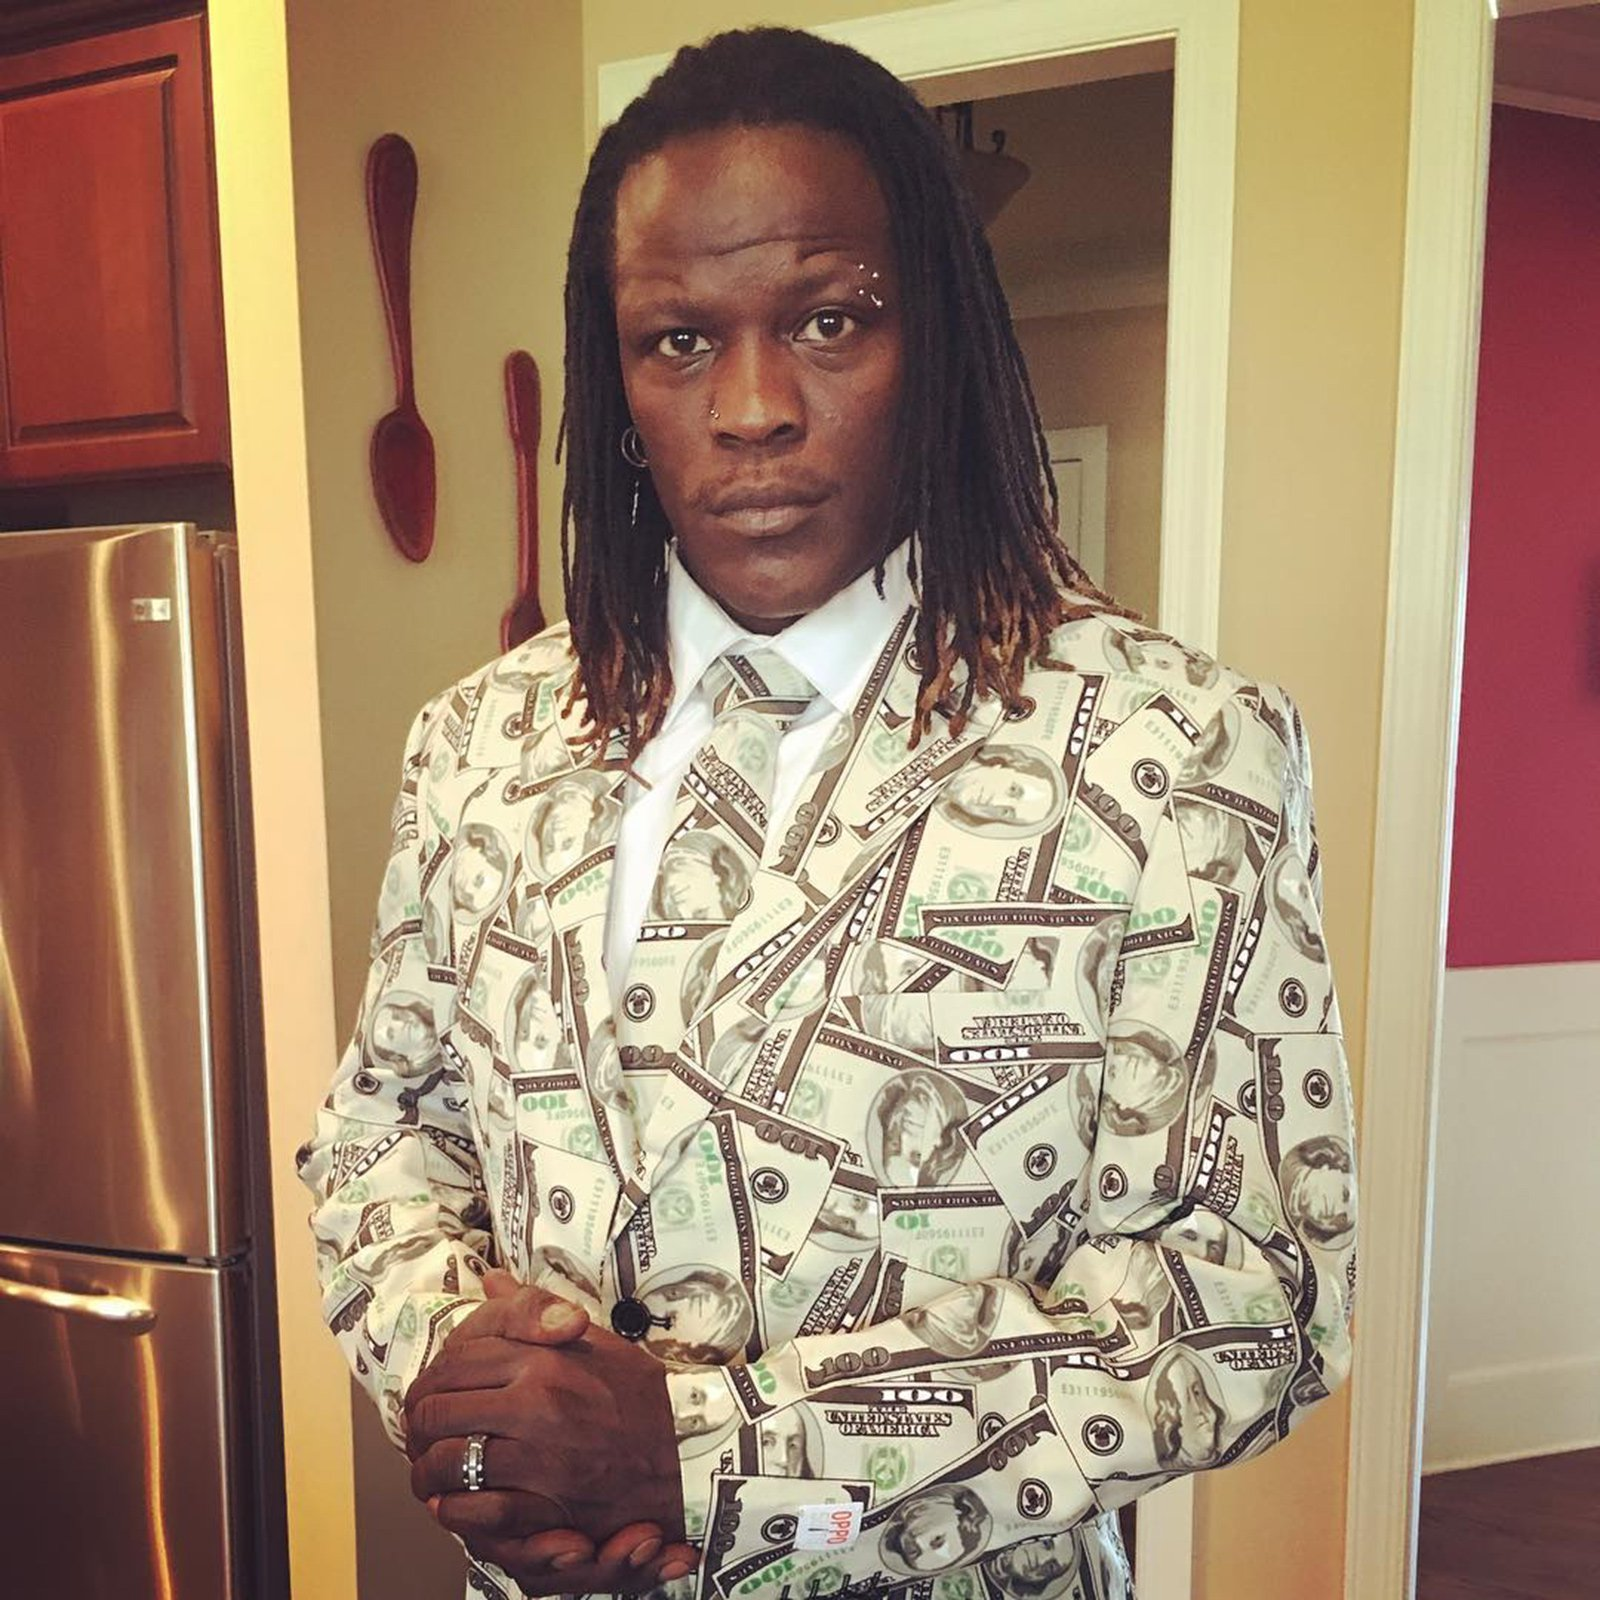 @ronkillings